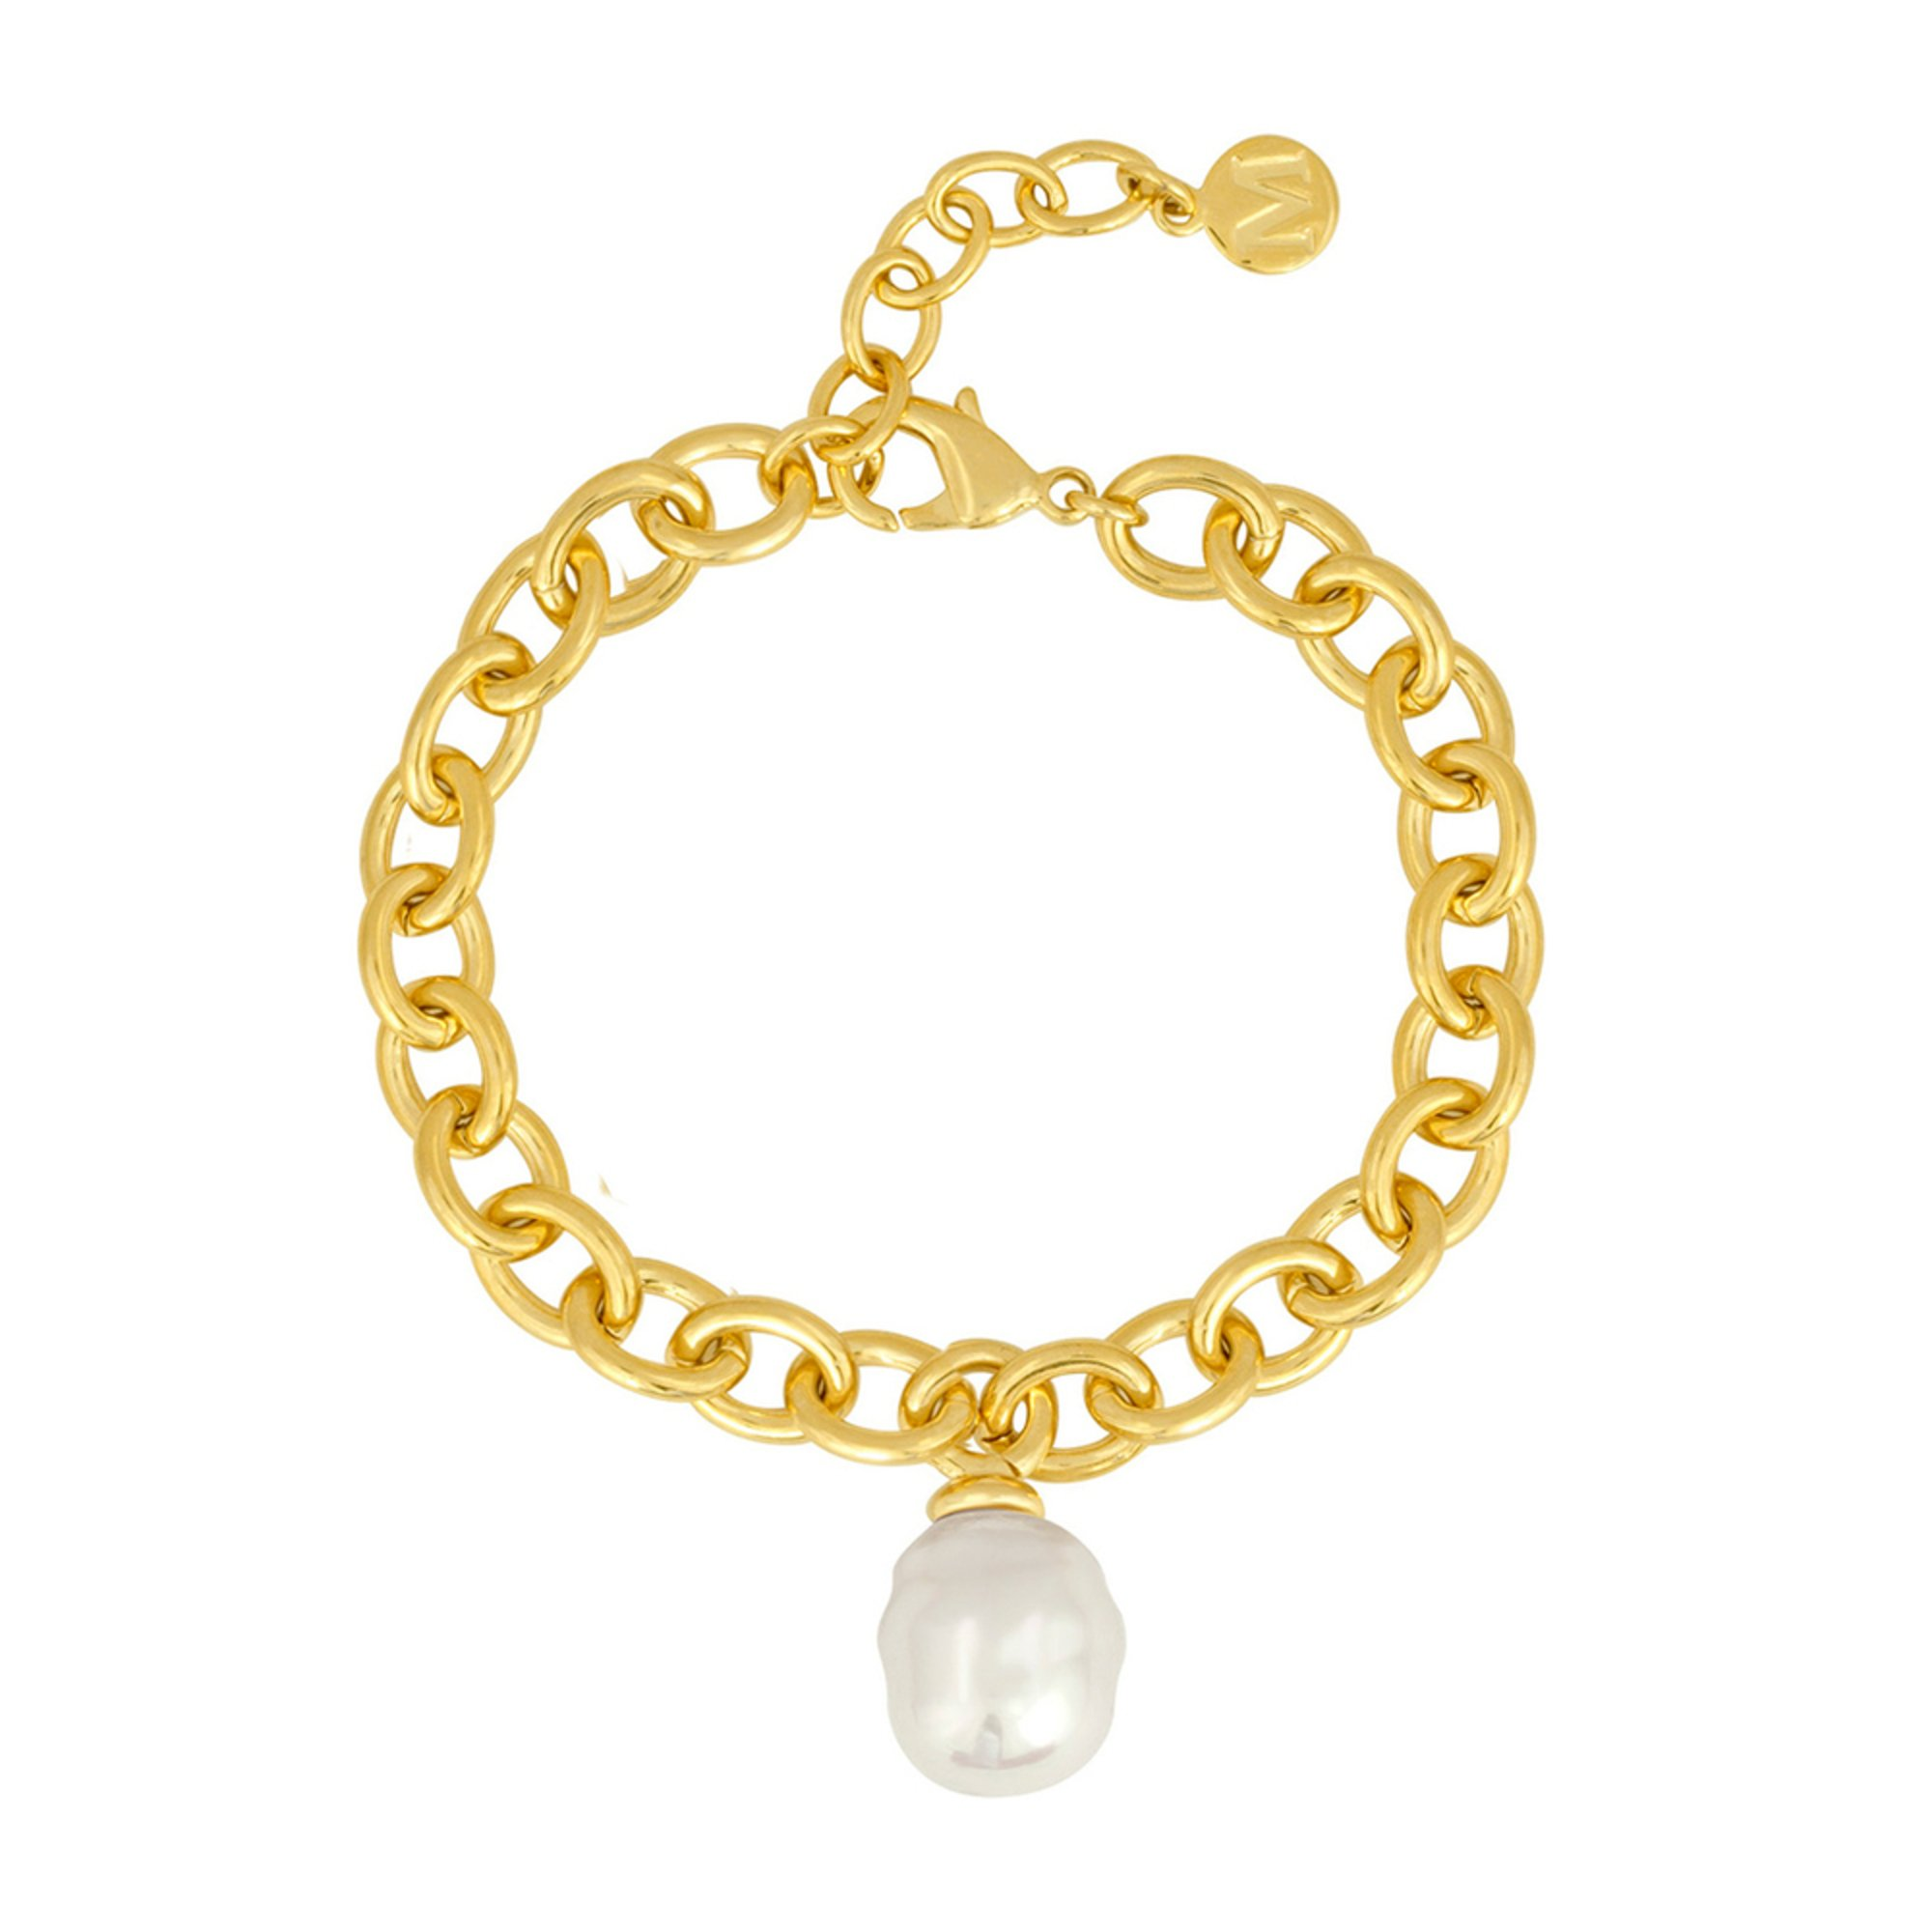 Majorica 14mm Simulated White Baroque Pearl Bracelet